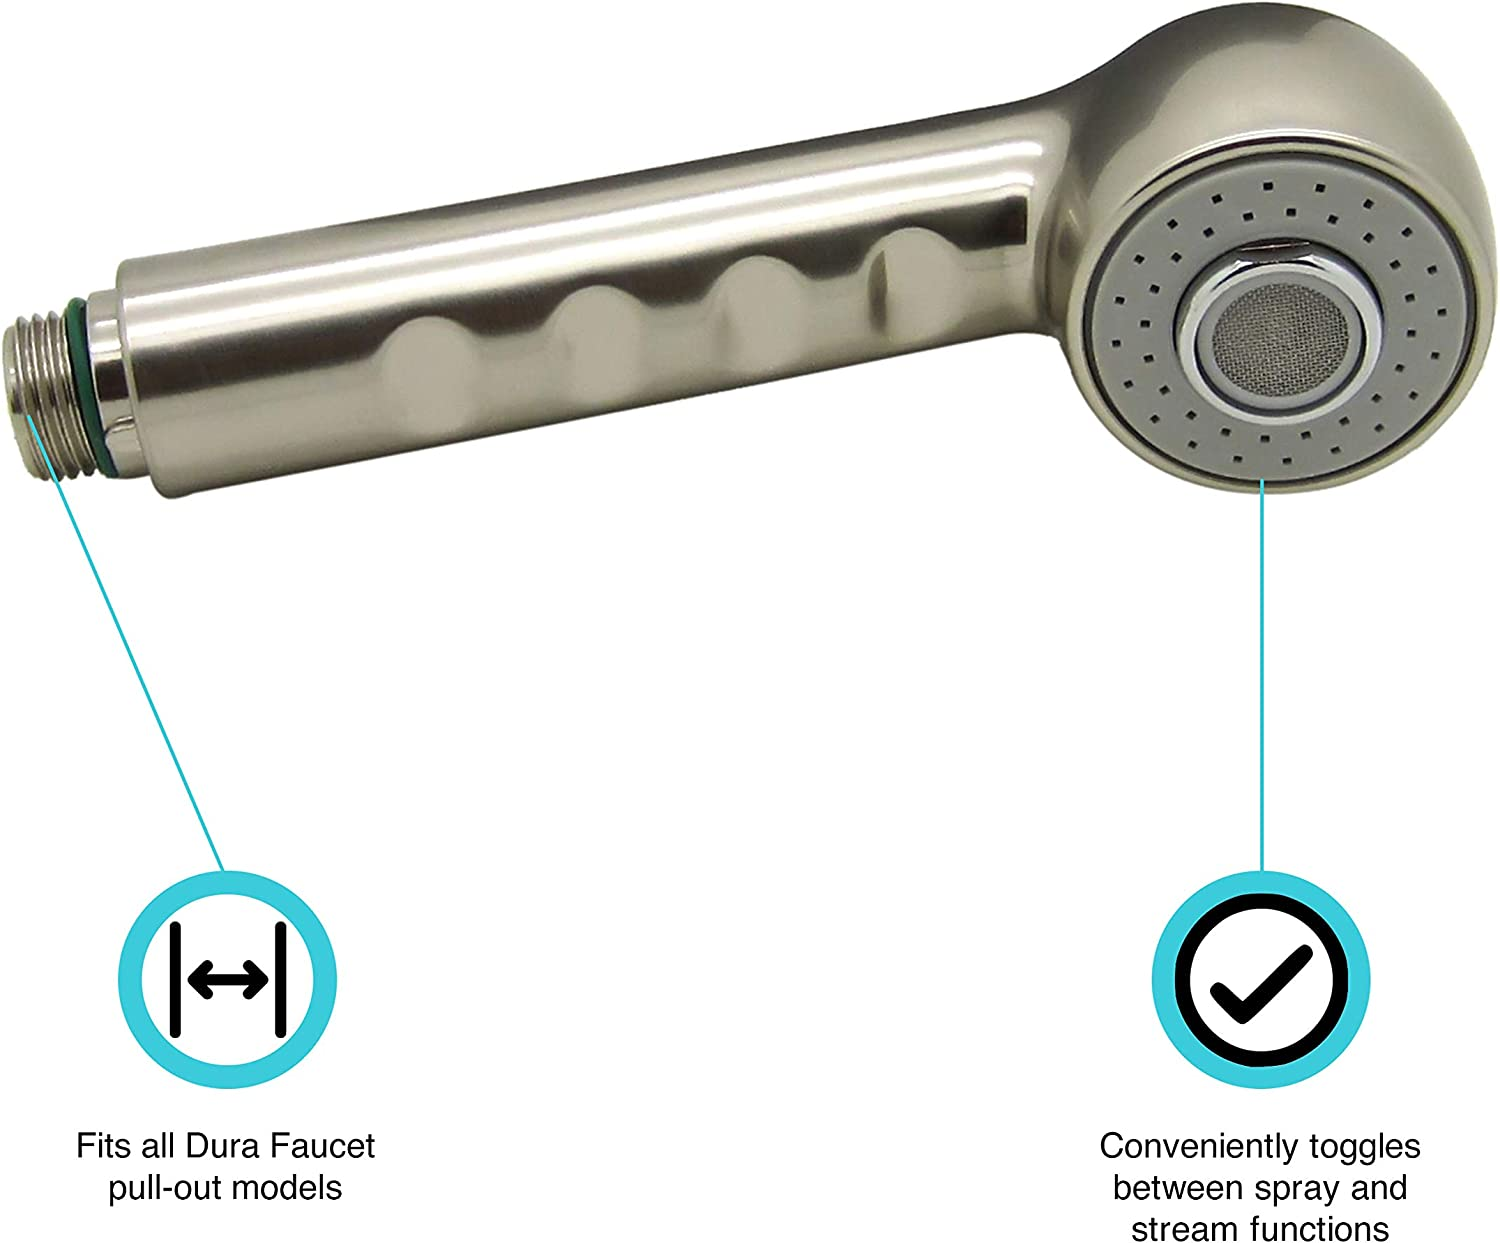 dura faucet df rk800 sn rv kitchen faucet pull out sprayer replacement brushed satin nickel